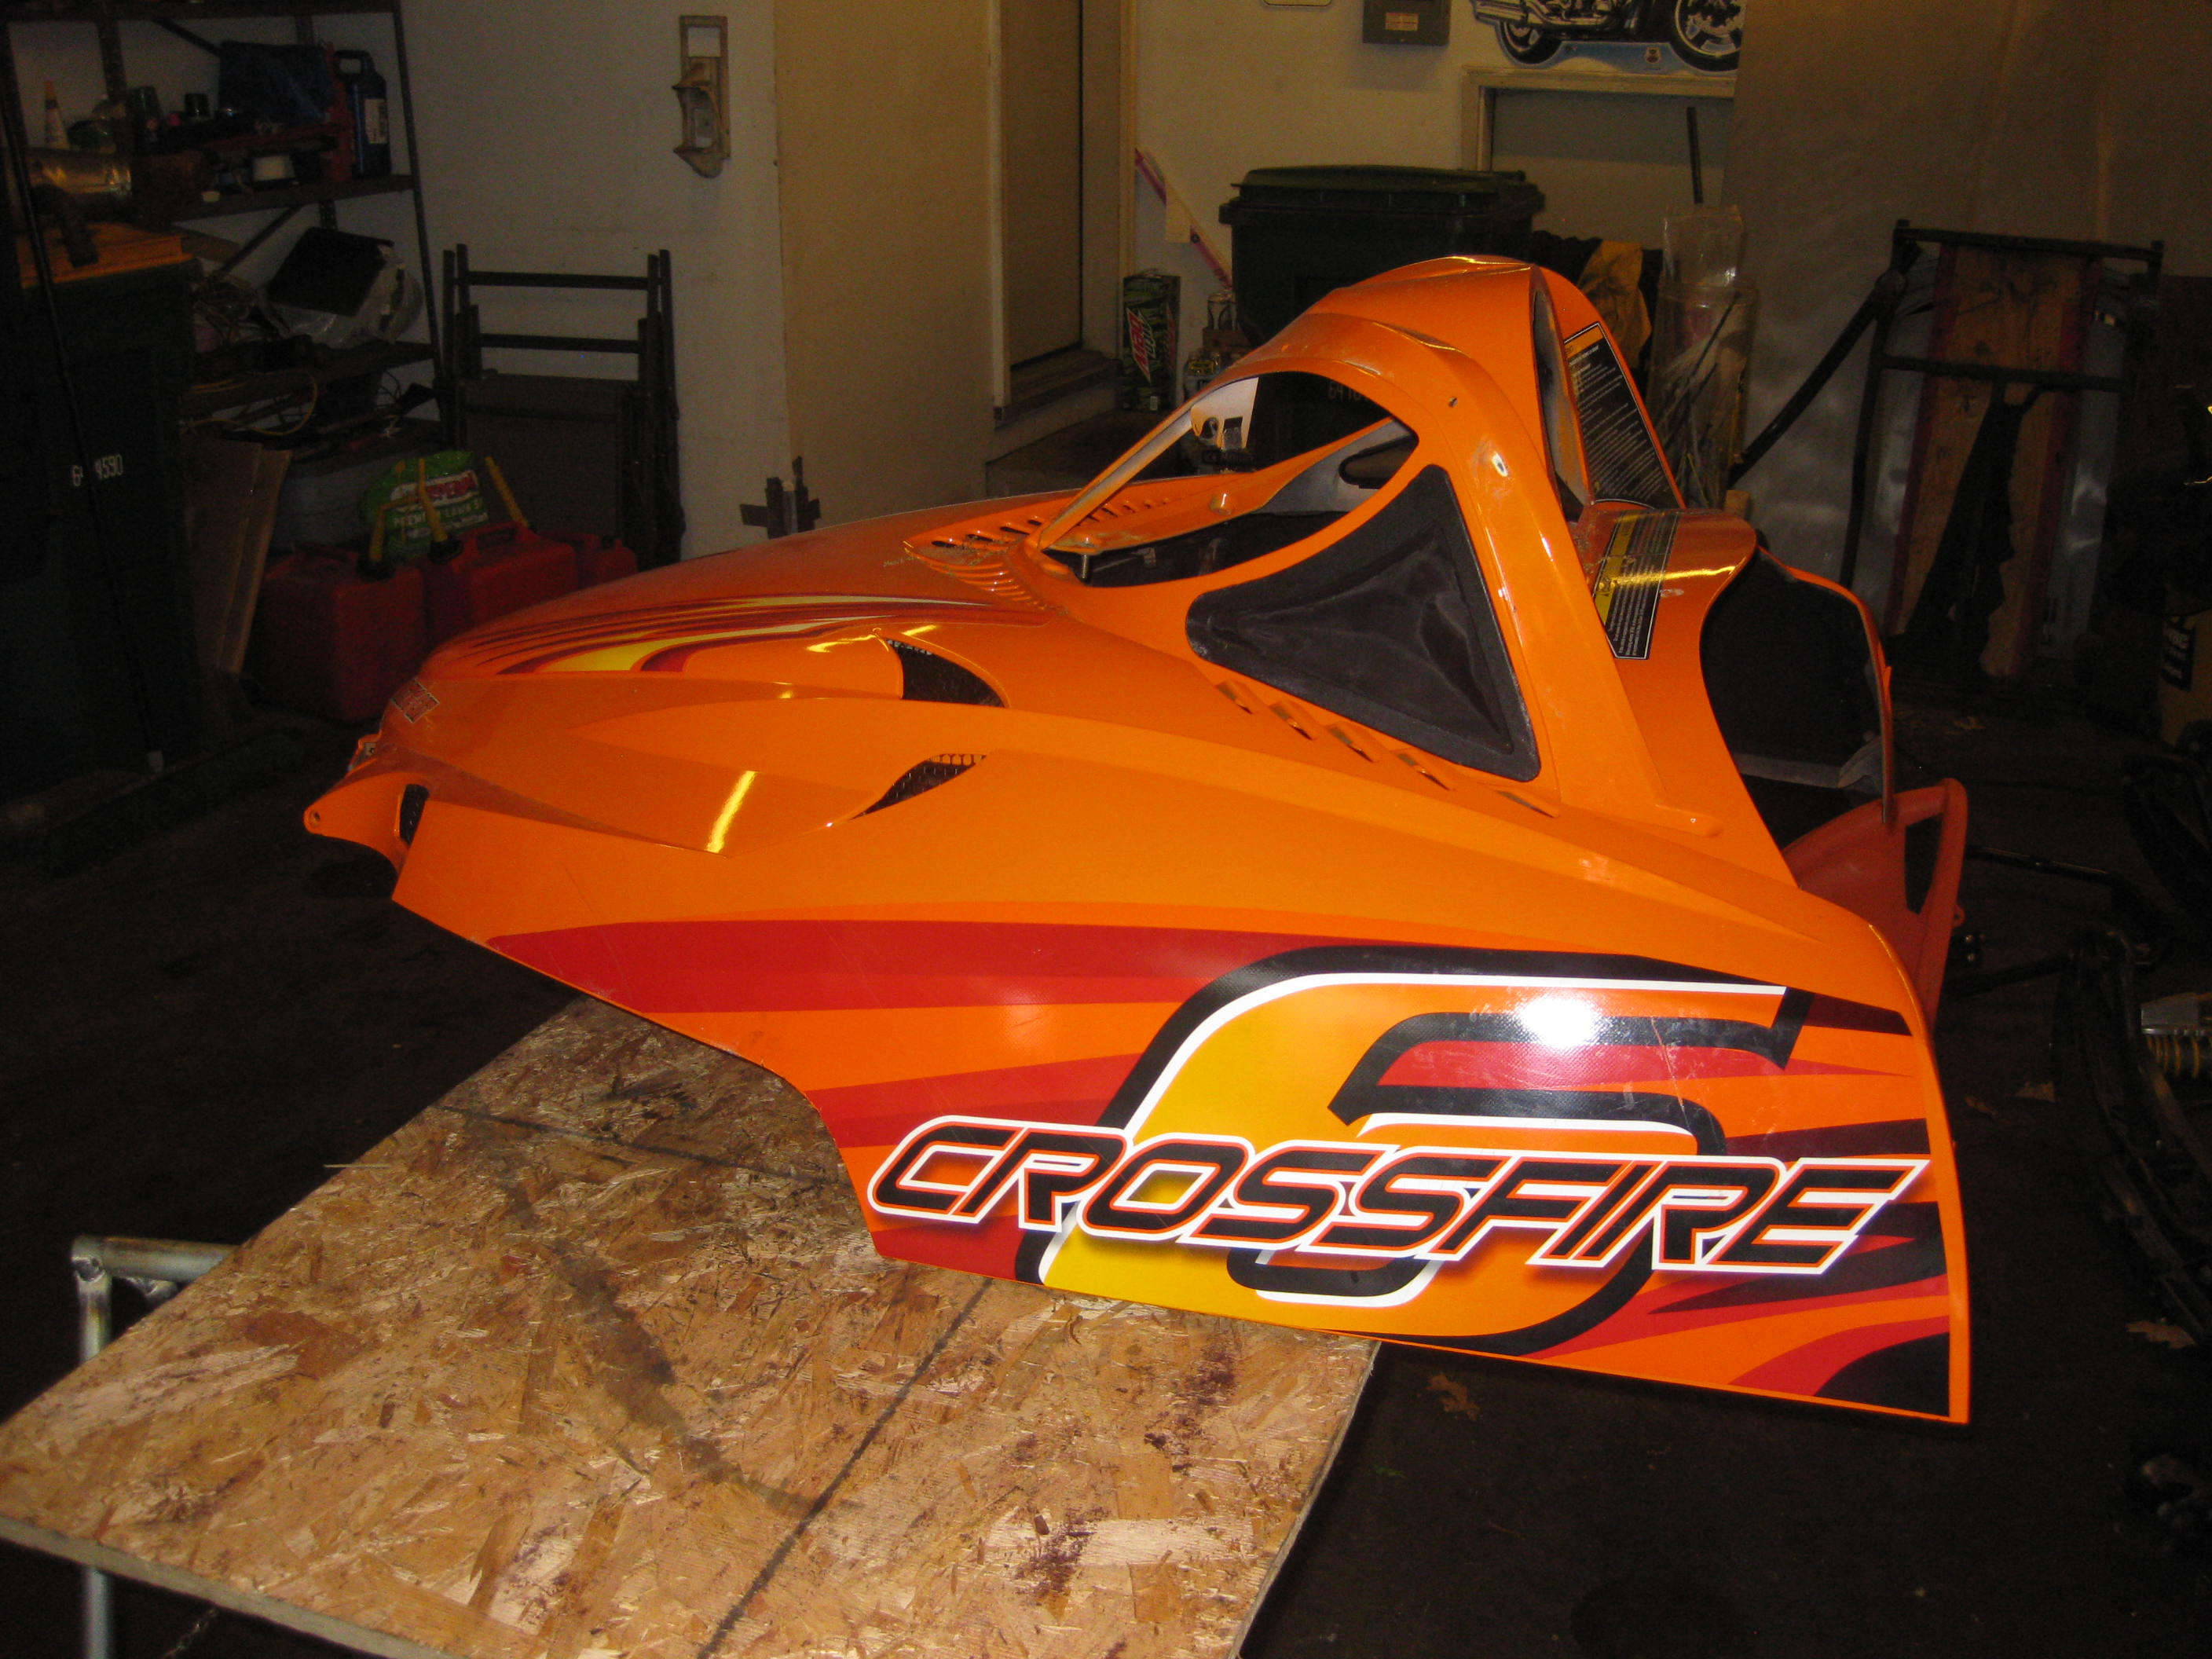 Parts available from 2006 Arctic Cat Crossfire 600 orange